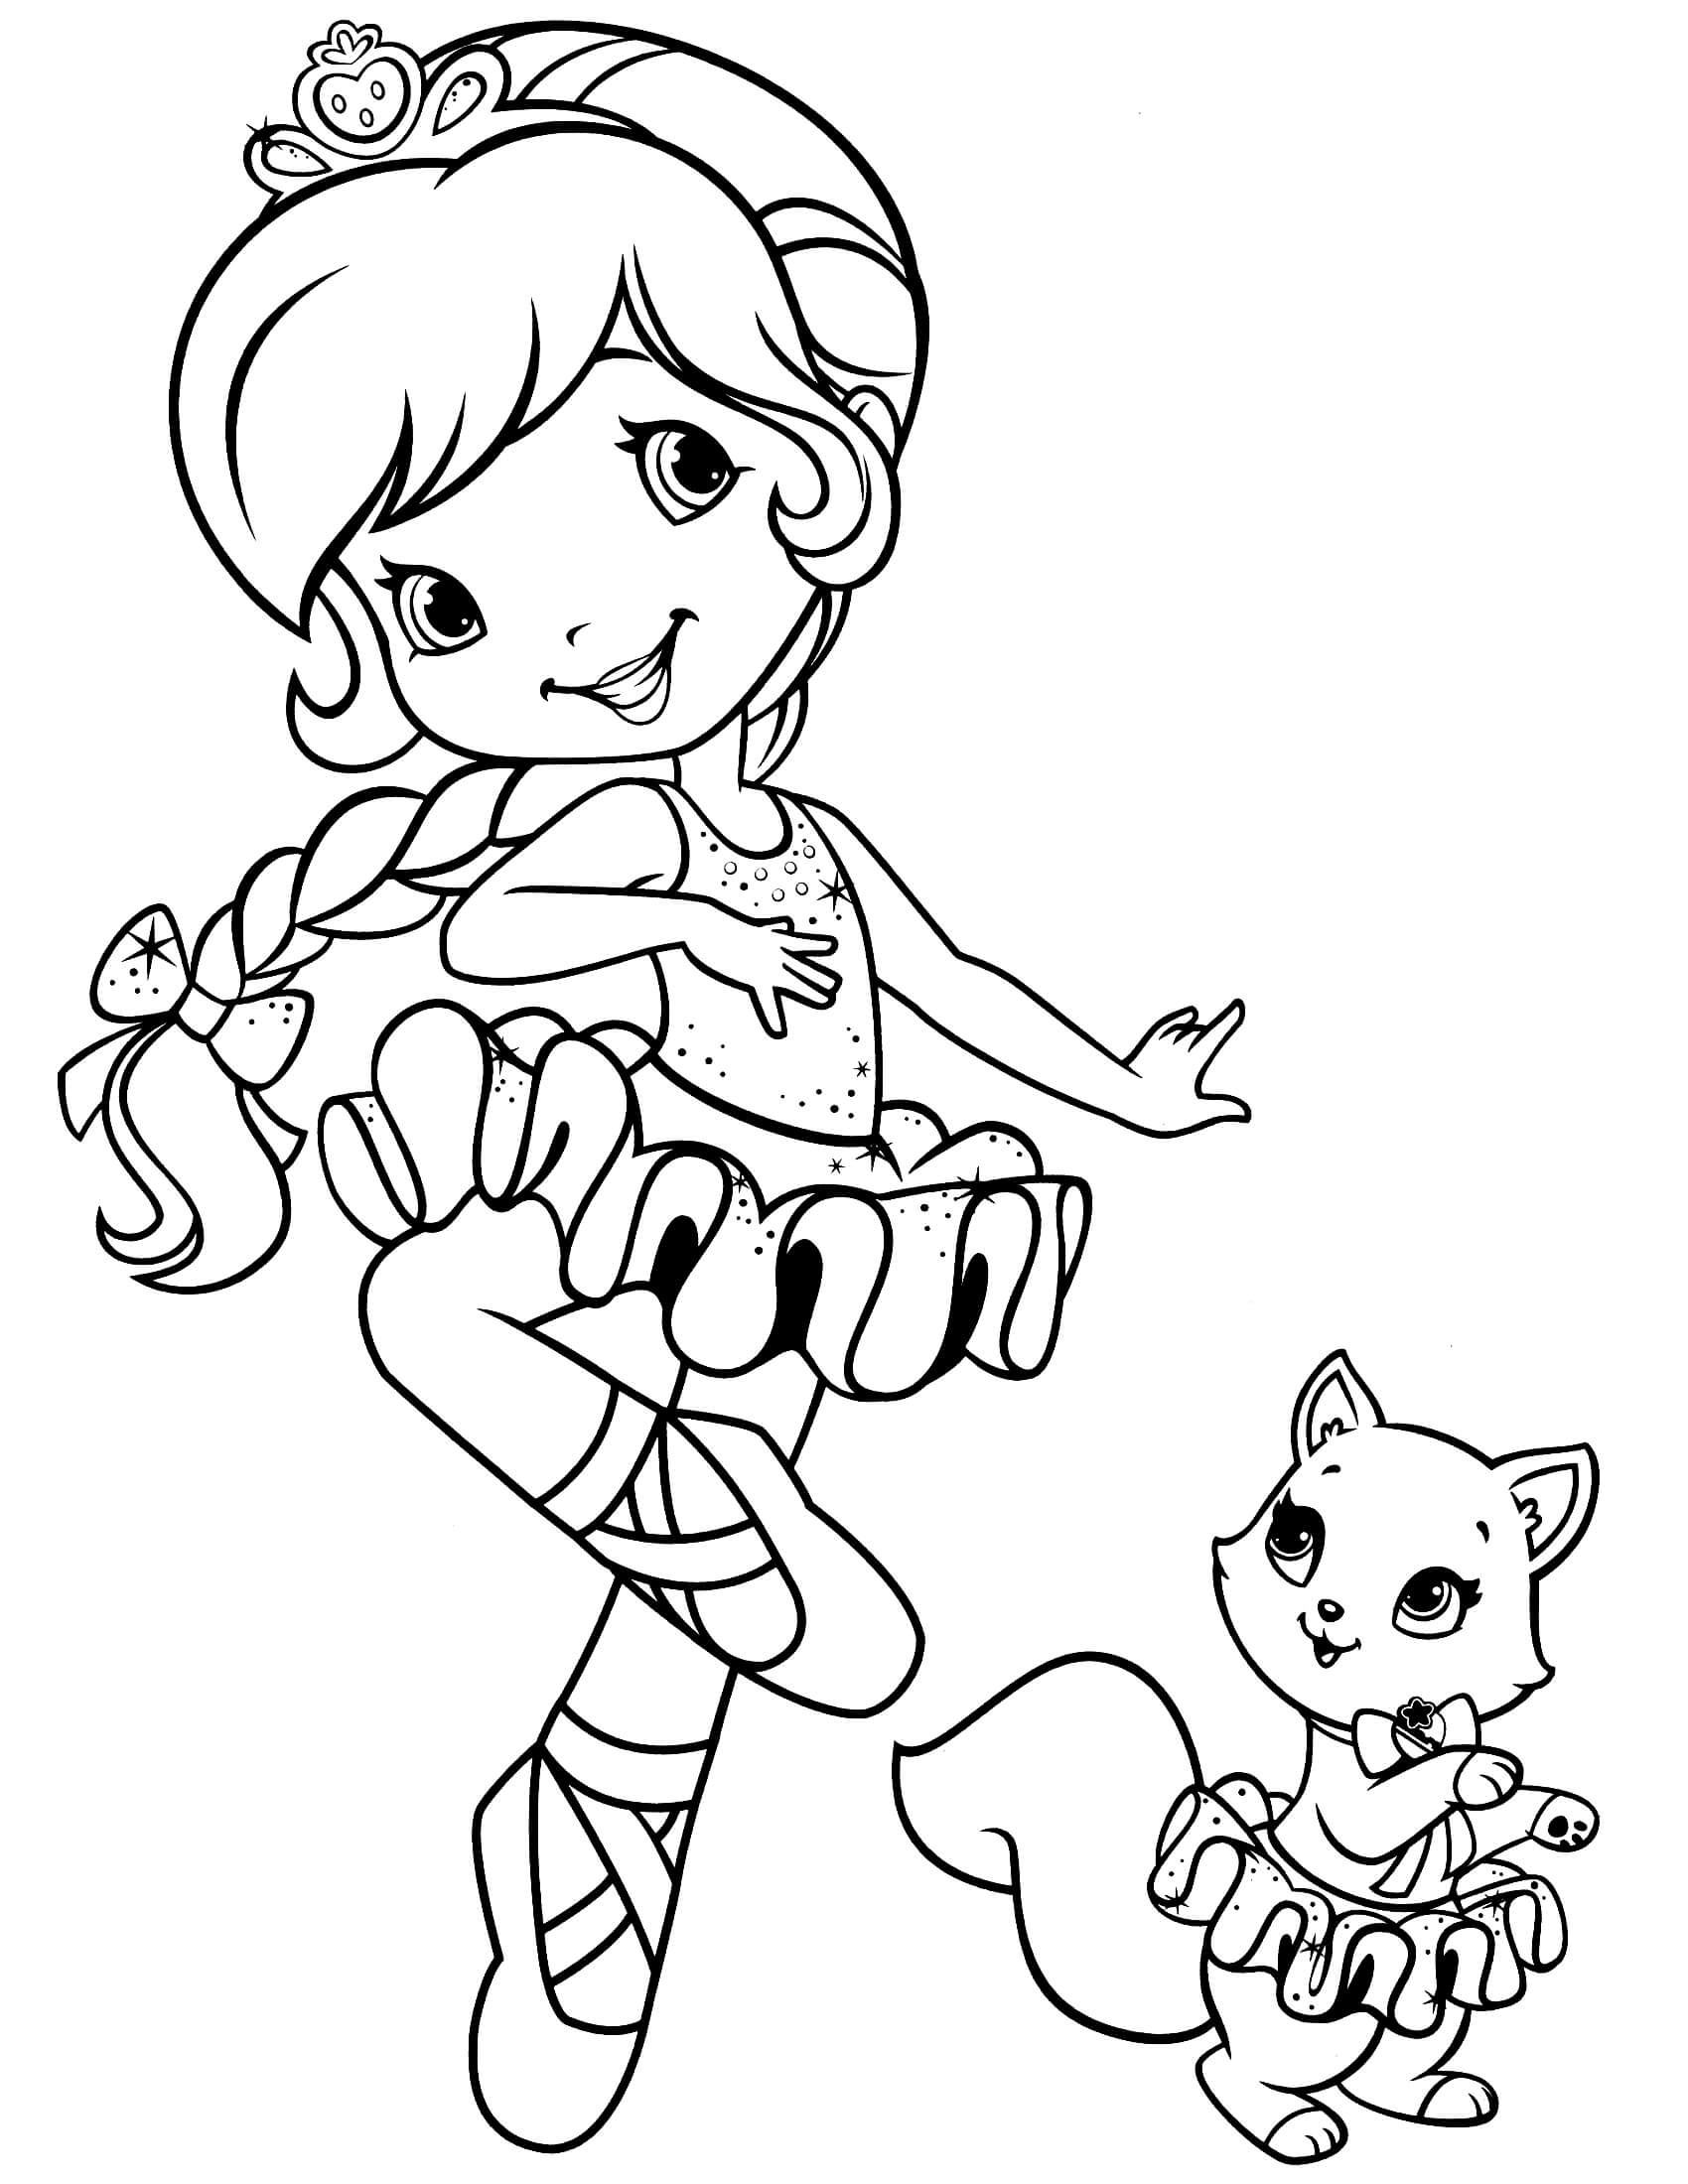 new strawberry shortcake coloring pages printable 141 best images about strawberry shortcake coloring pages pages shortcake coloring new strawberry printable